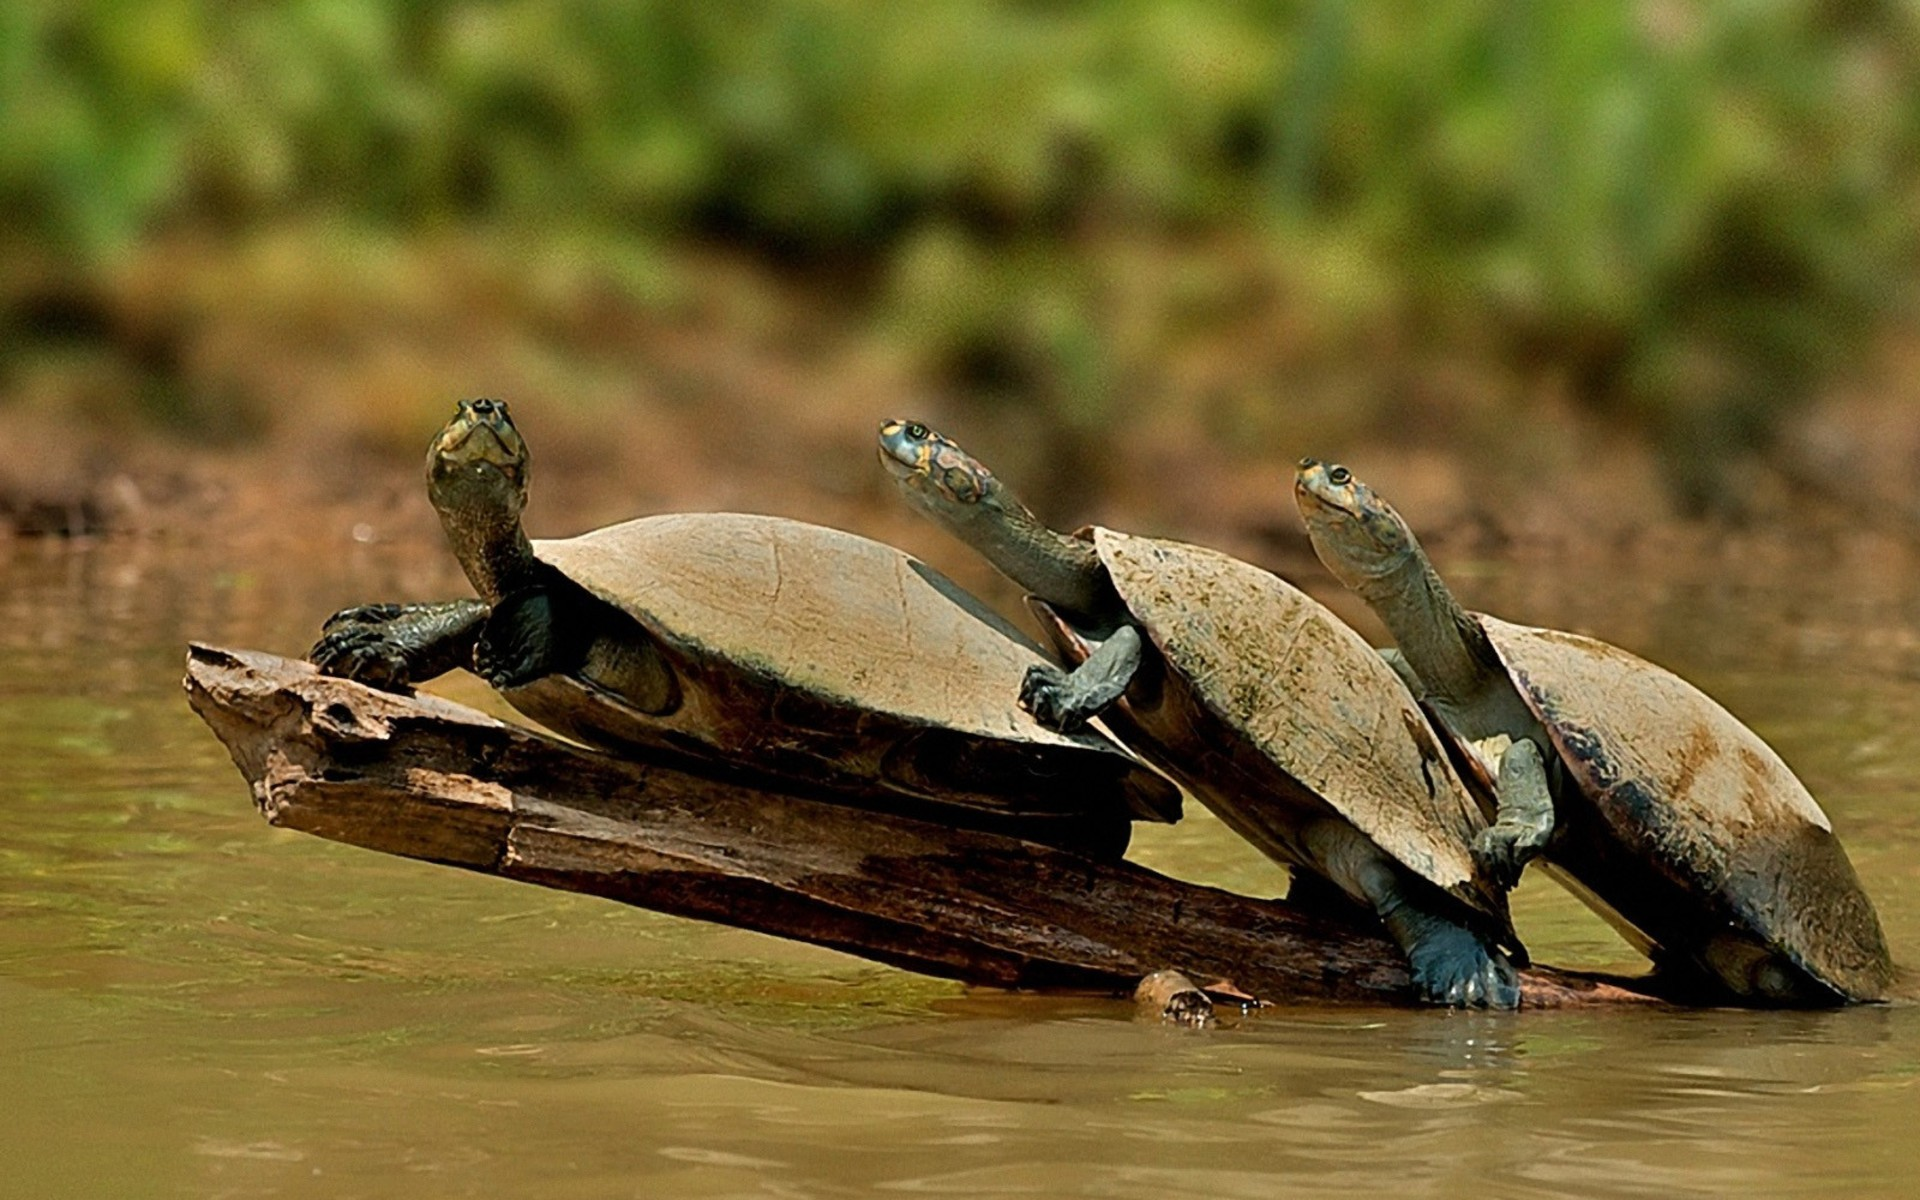 Turtles In A Row Wallpaper 1920x1200 px